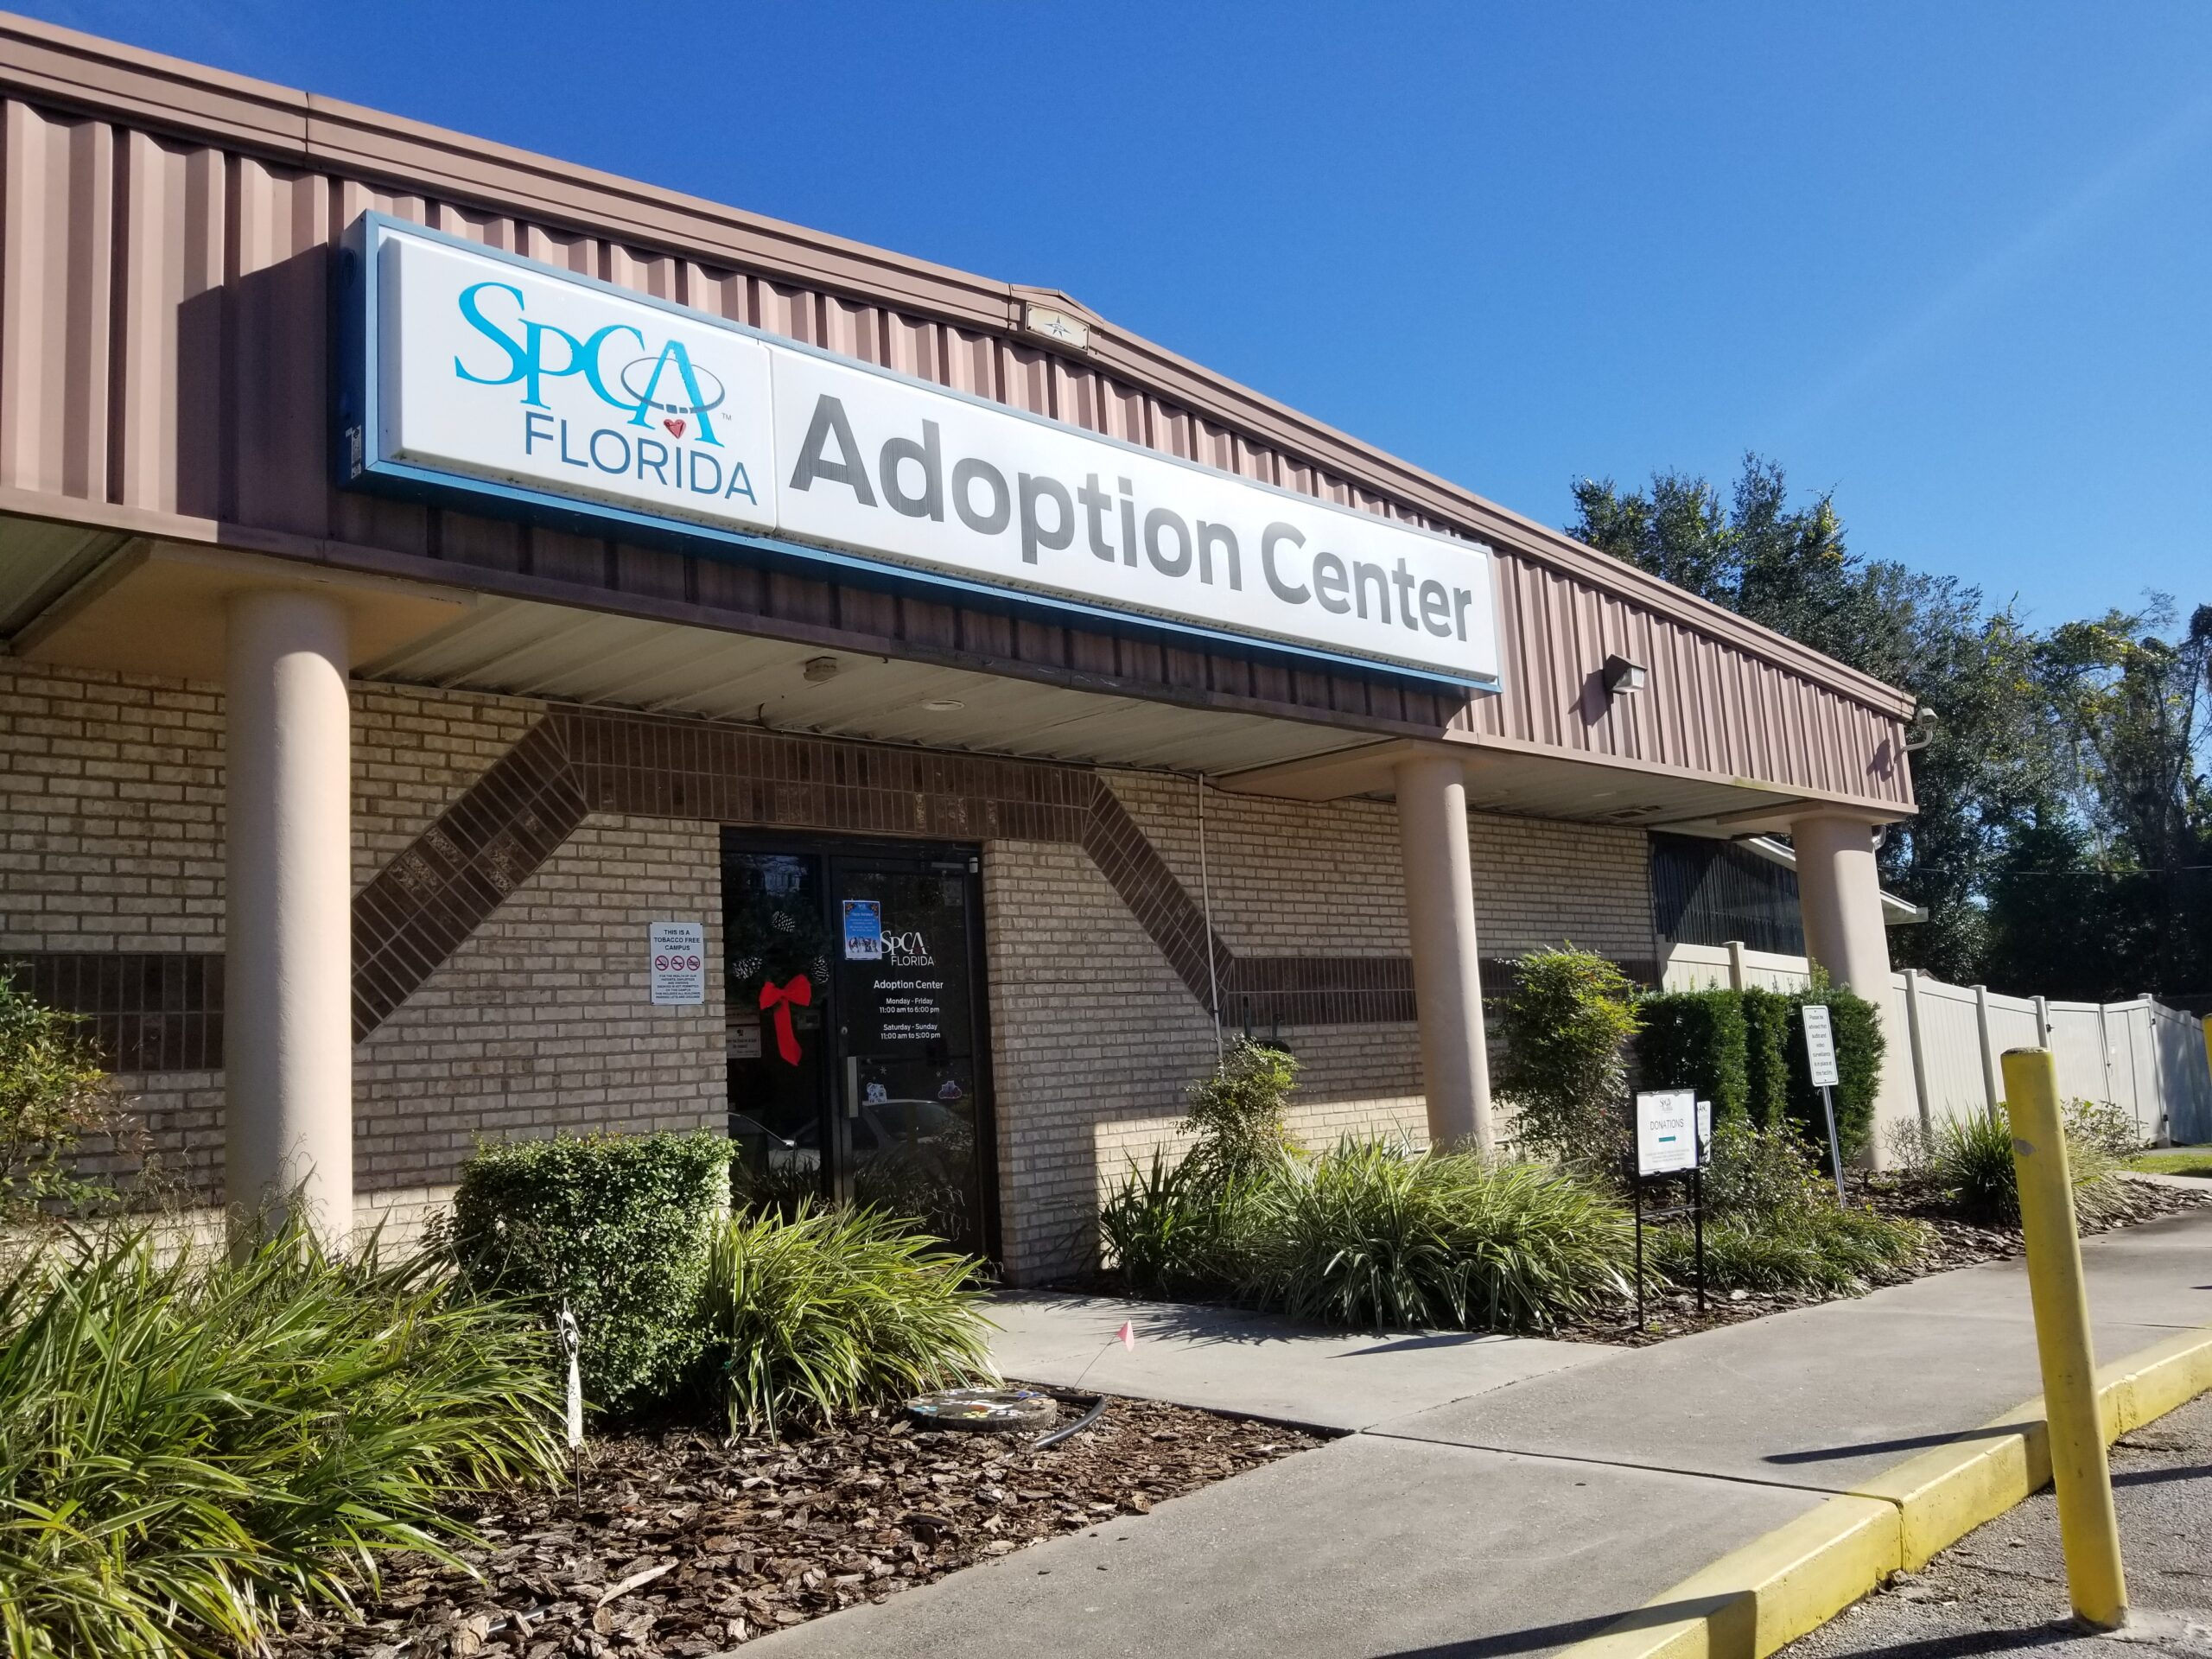 Bringing Some Holiday Cheer to The Pets of SPCA Florida